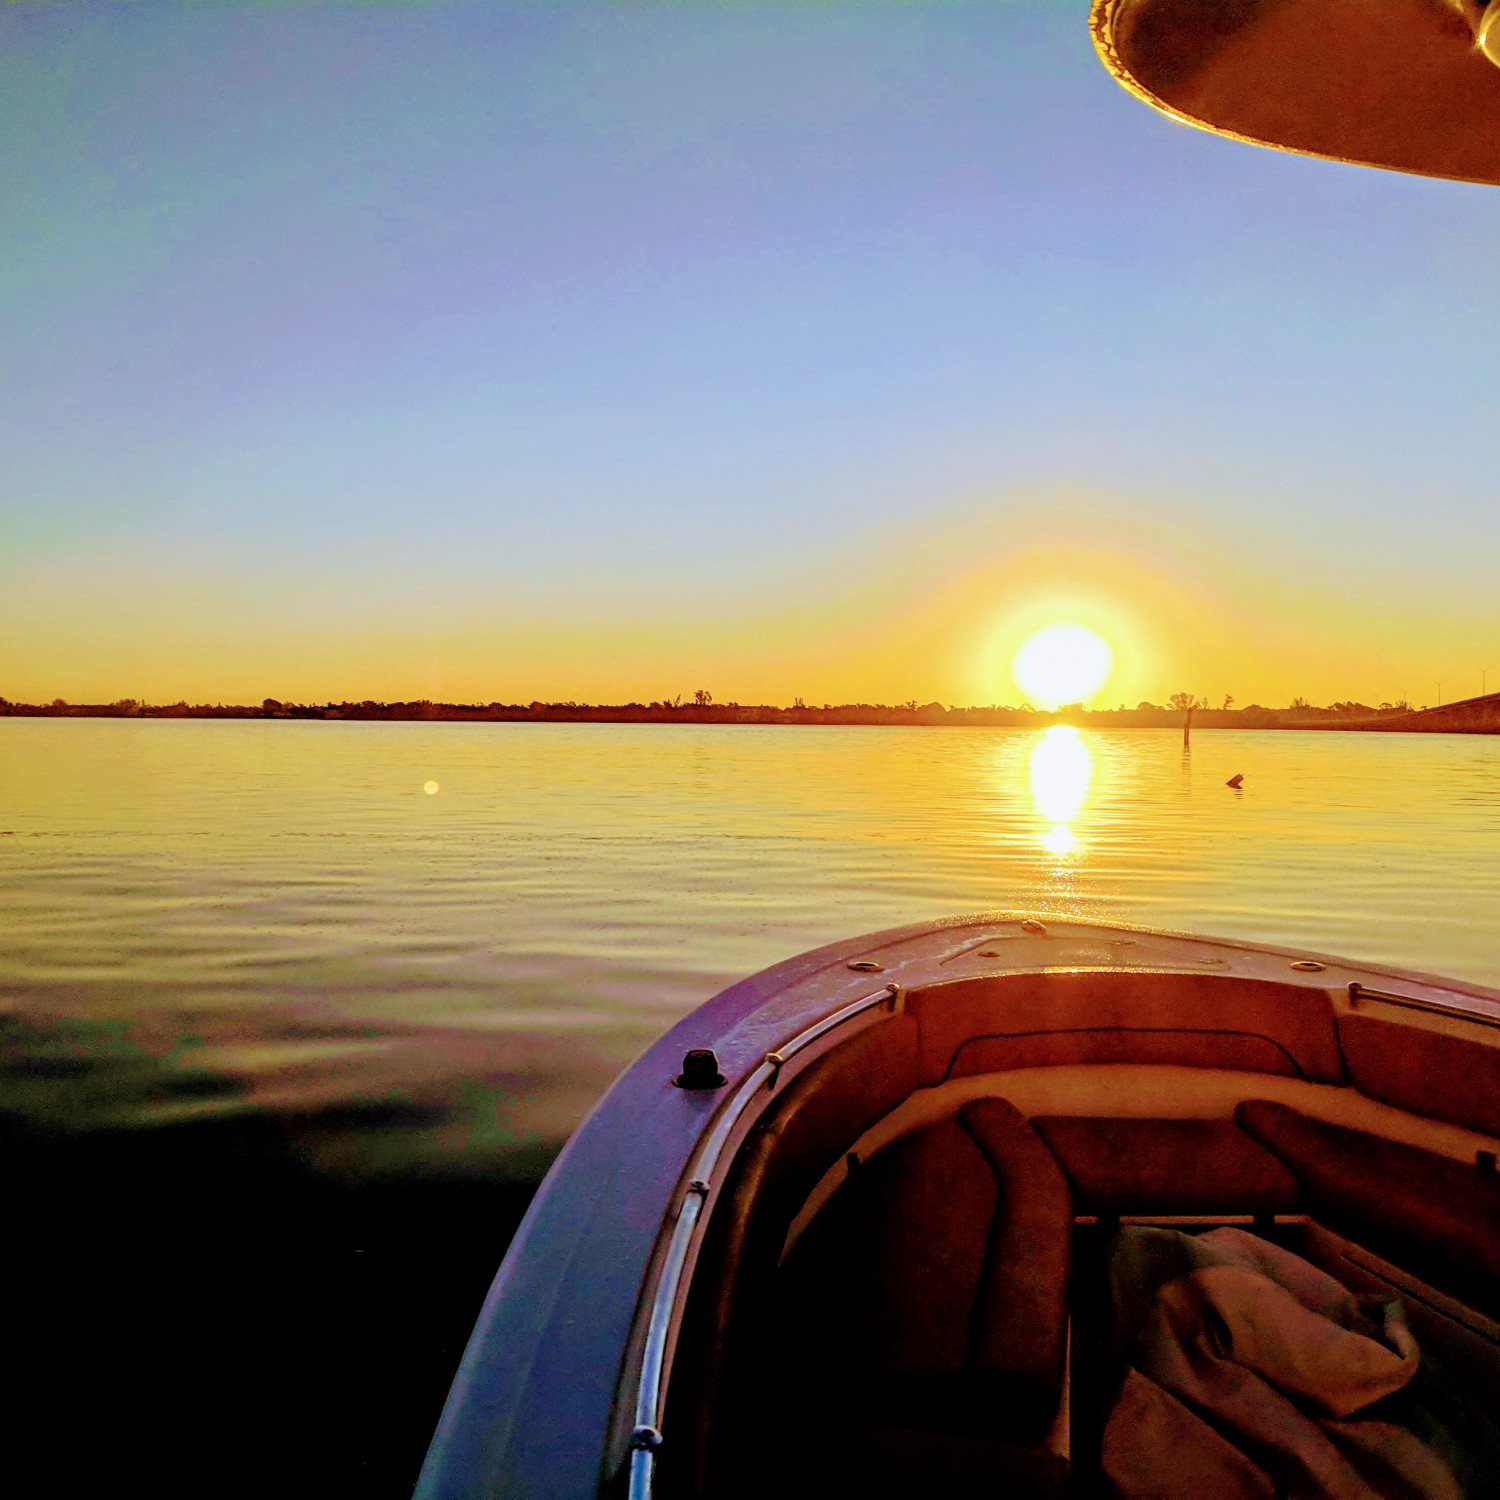 Title: Sunrise morning - On board their Sportsman Open 282 Center Console - Location: Cape Coral, Florida. Participating in the Photo Contest #SportsmanDecember2017